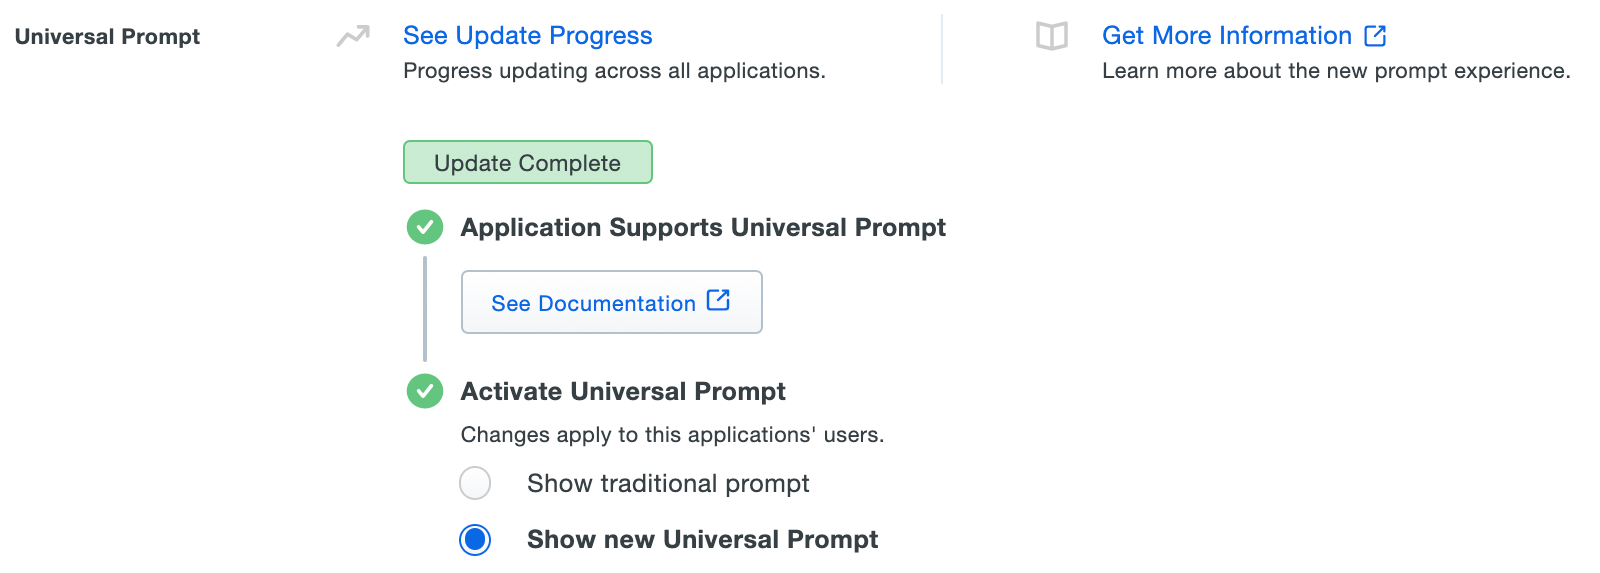 Universal Prompt Info - Universal Prompt Activation Complete